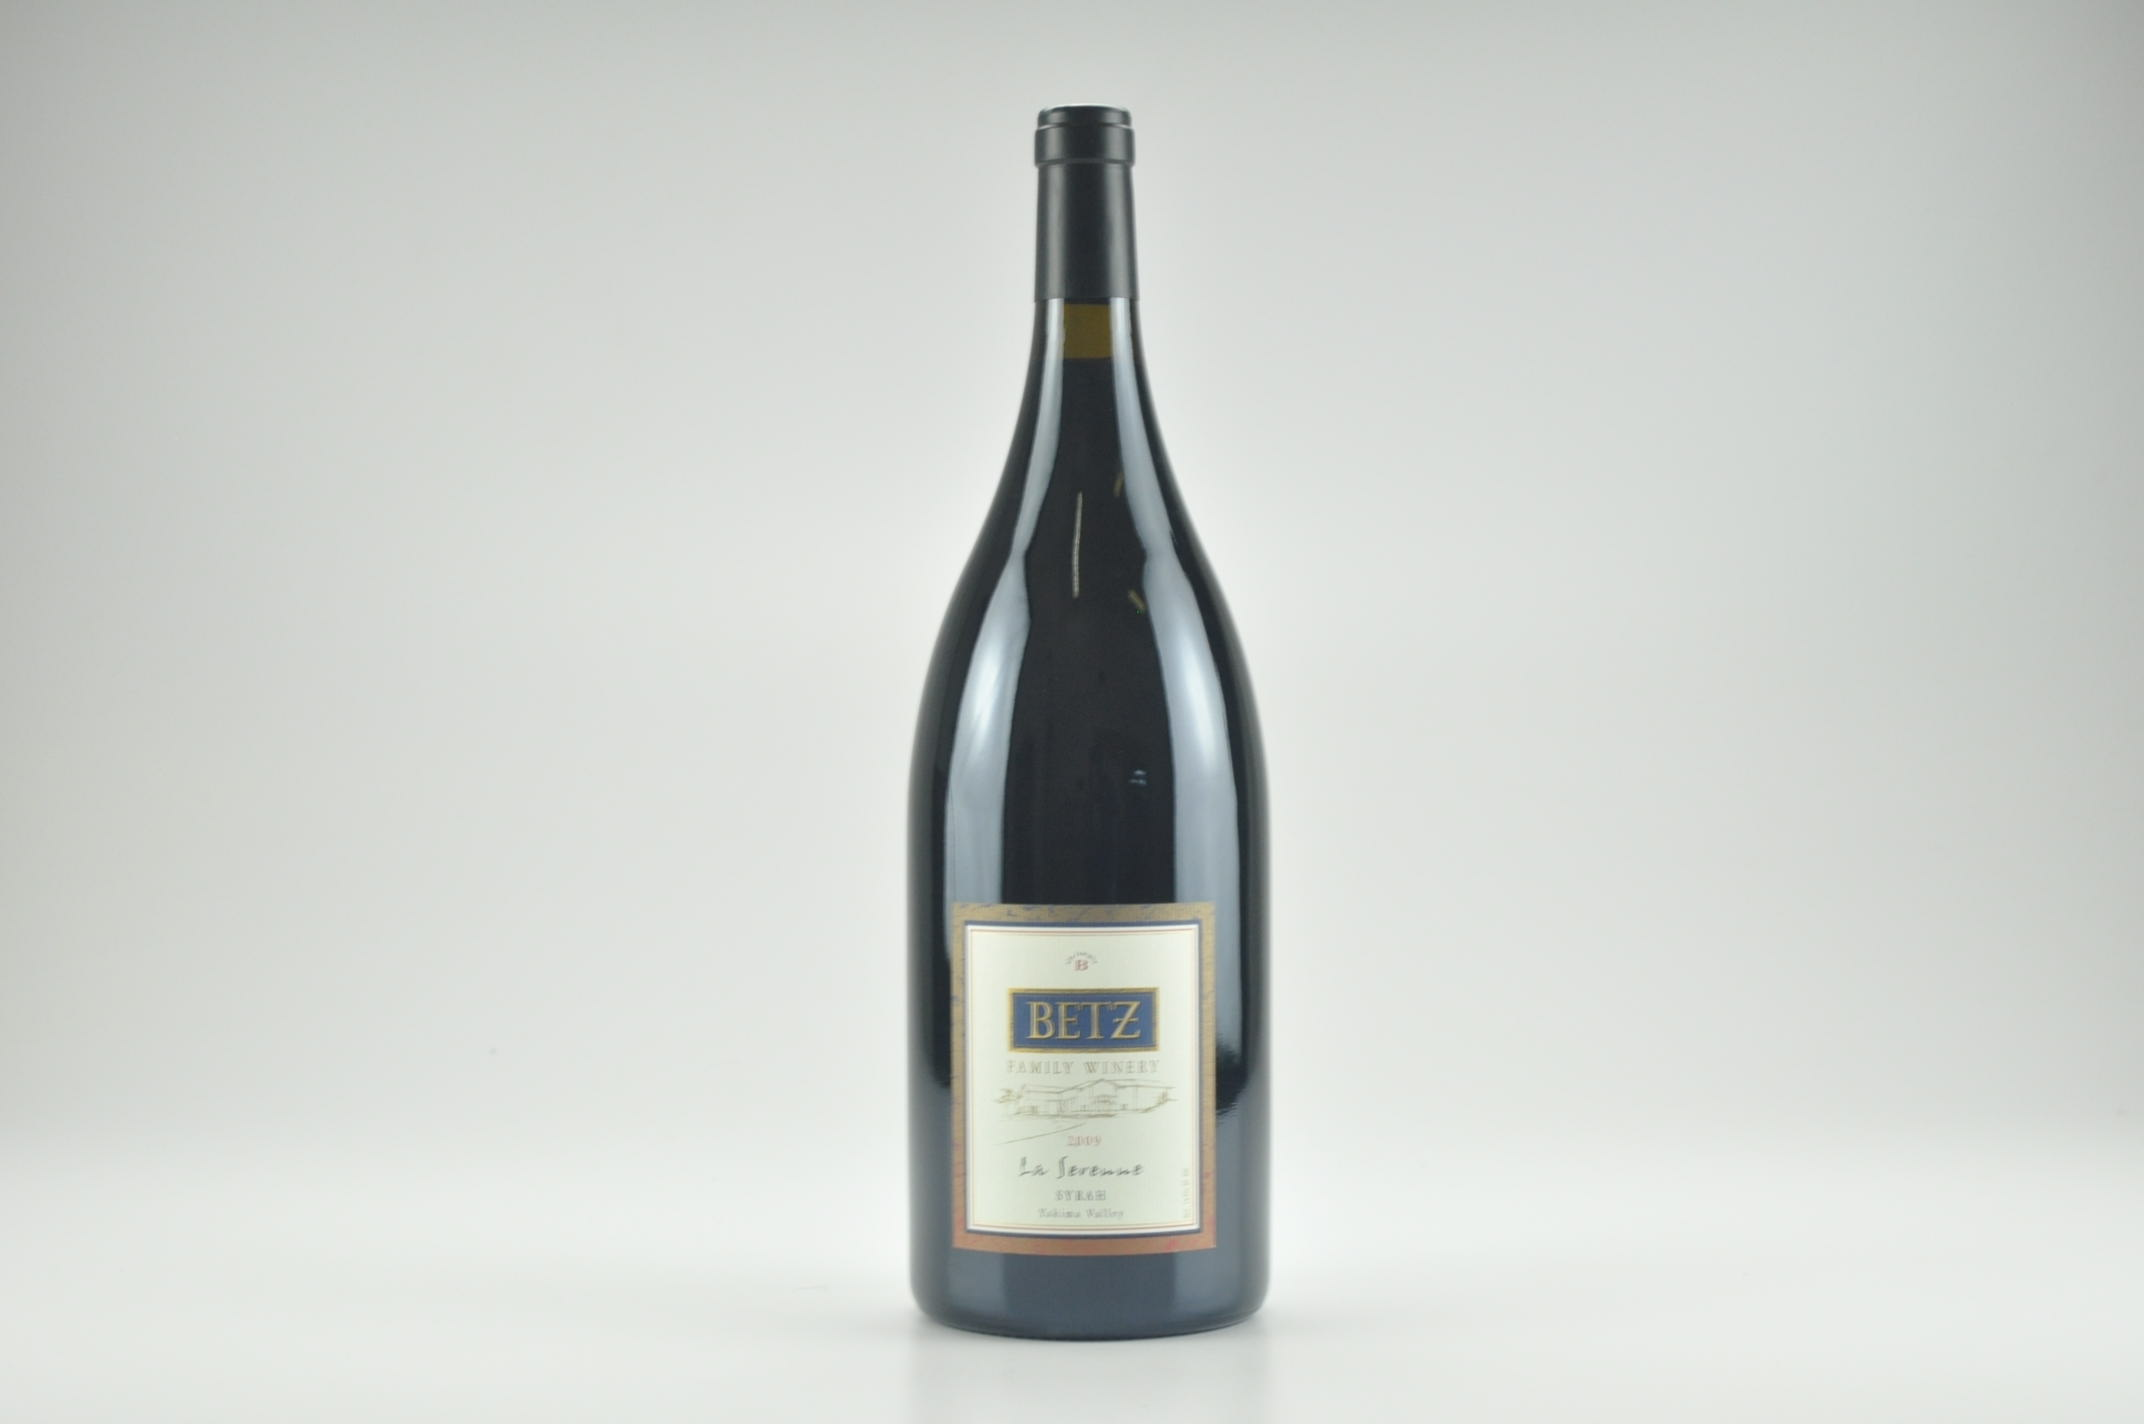 2009 Betz Family Winery La Serenne Syrah 1.5 L, Columbia Valley RP--93